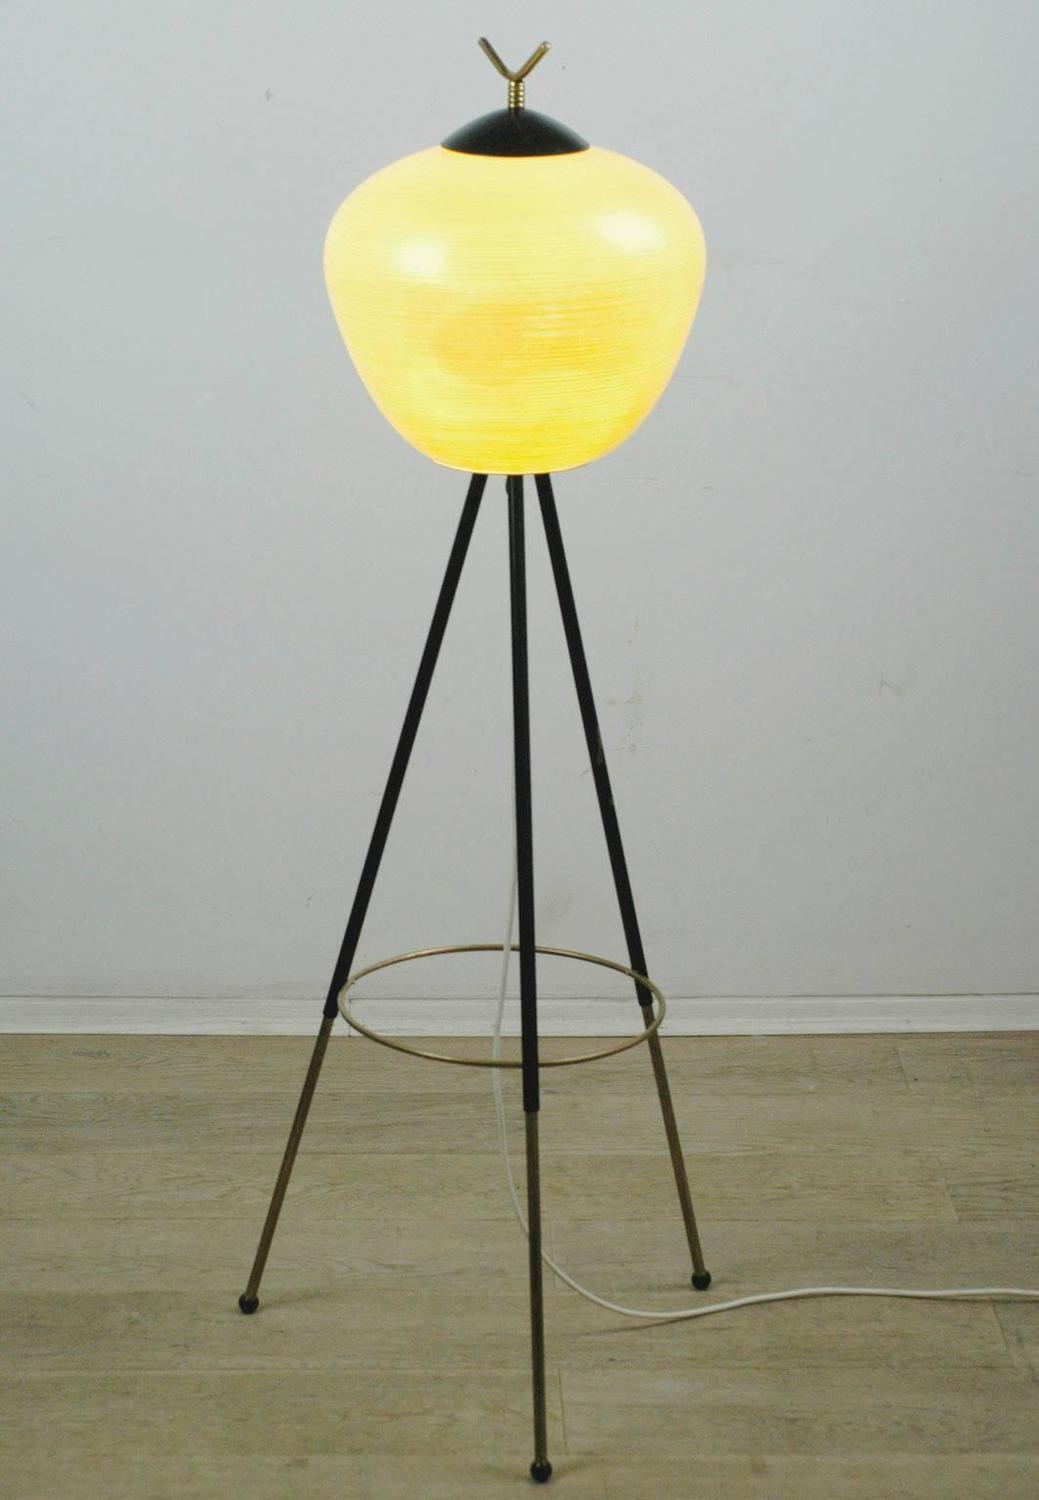 Tripod Floor Lamps Sale Stilnovo Tripod Floor Lamp For Sale At 1stdibs